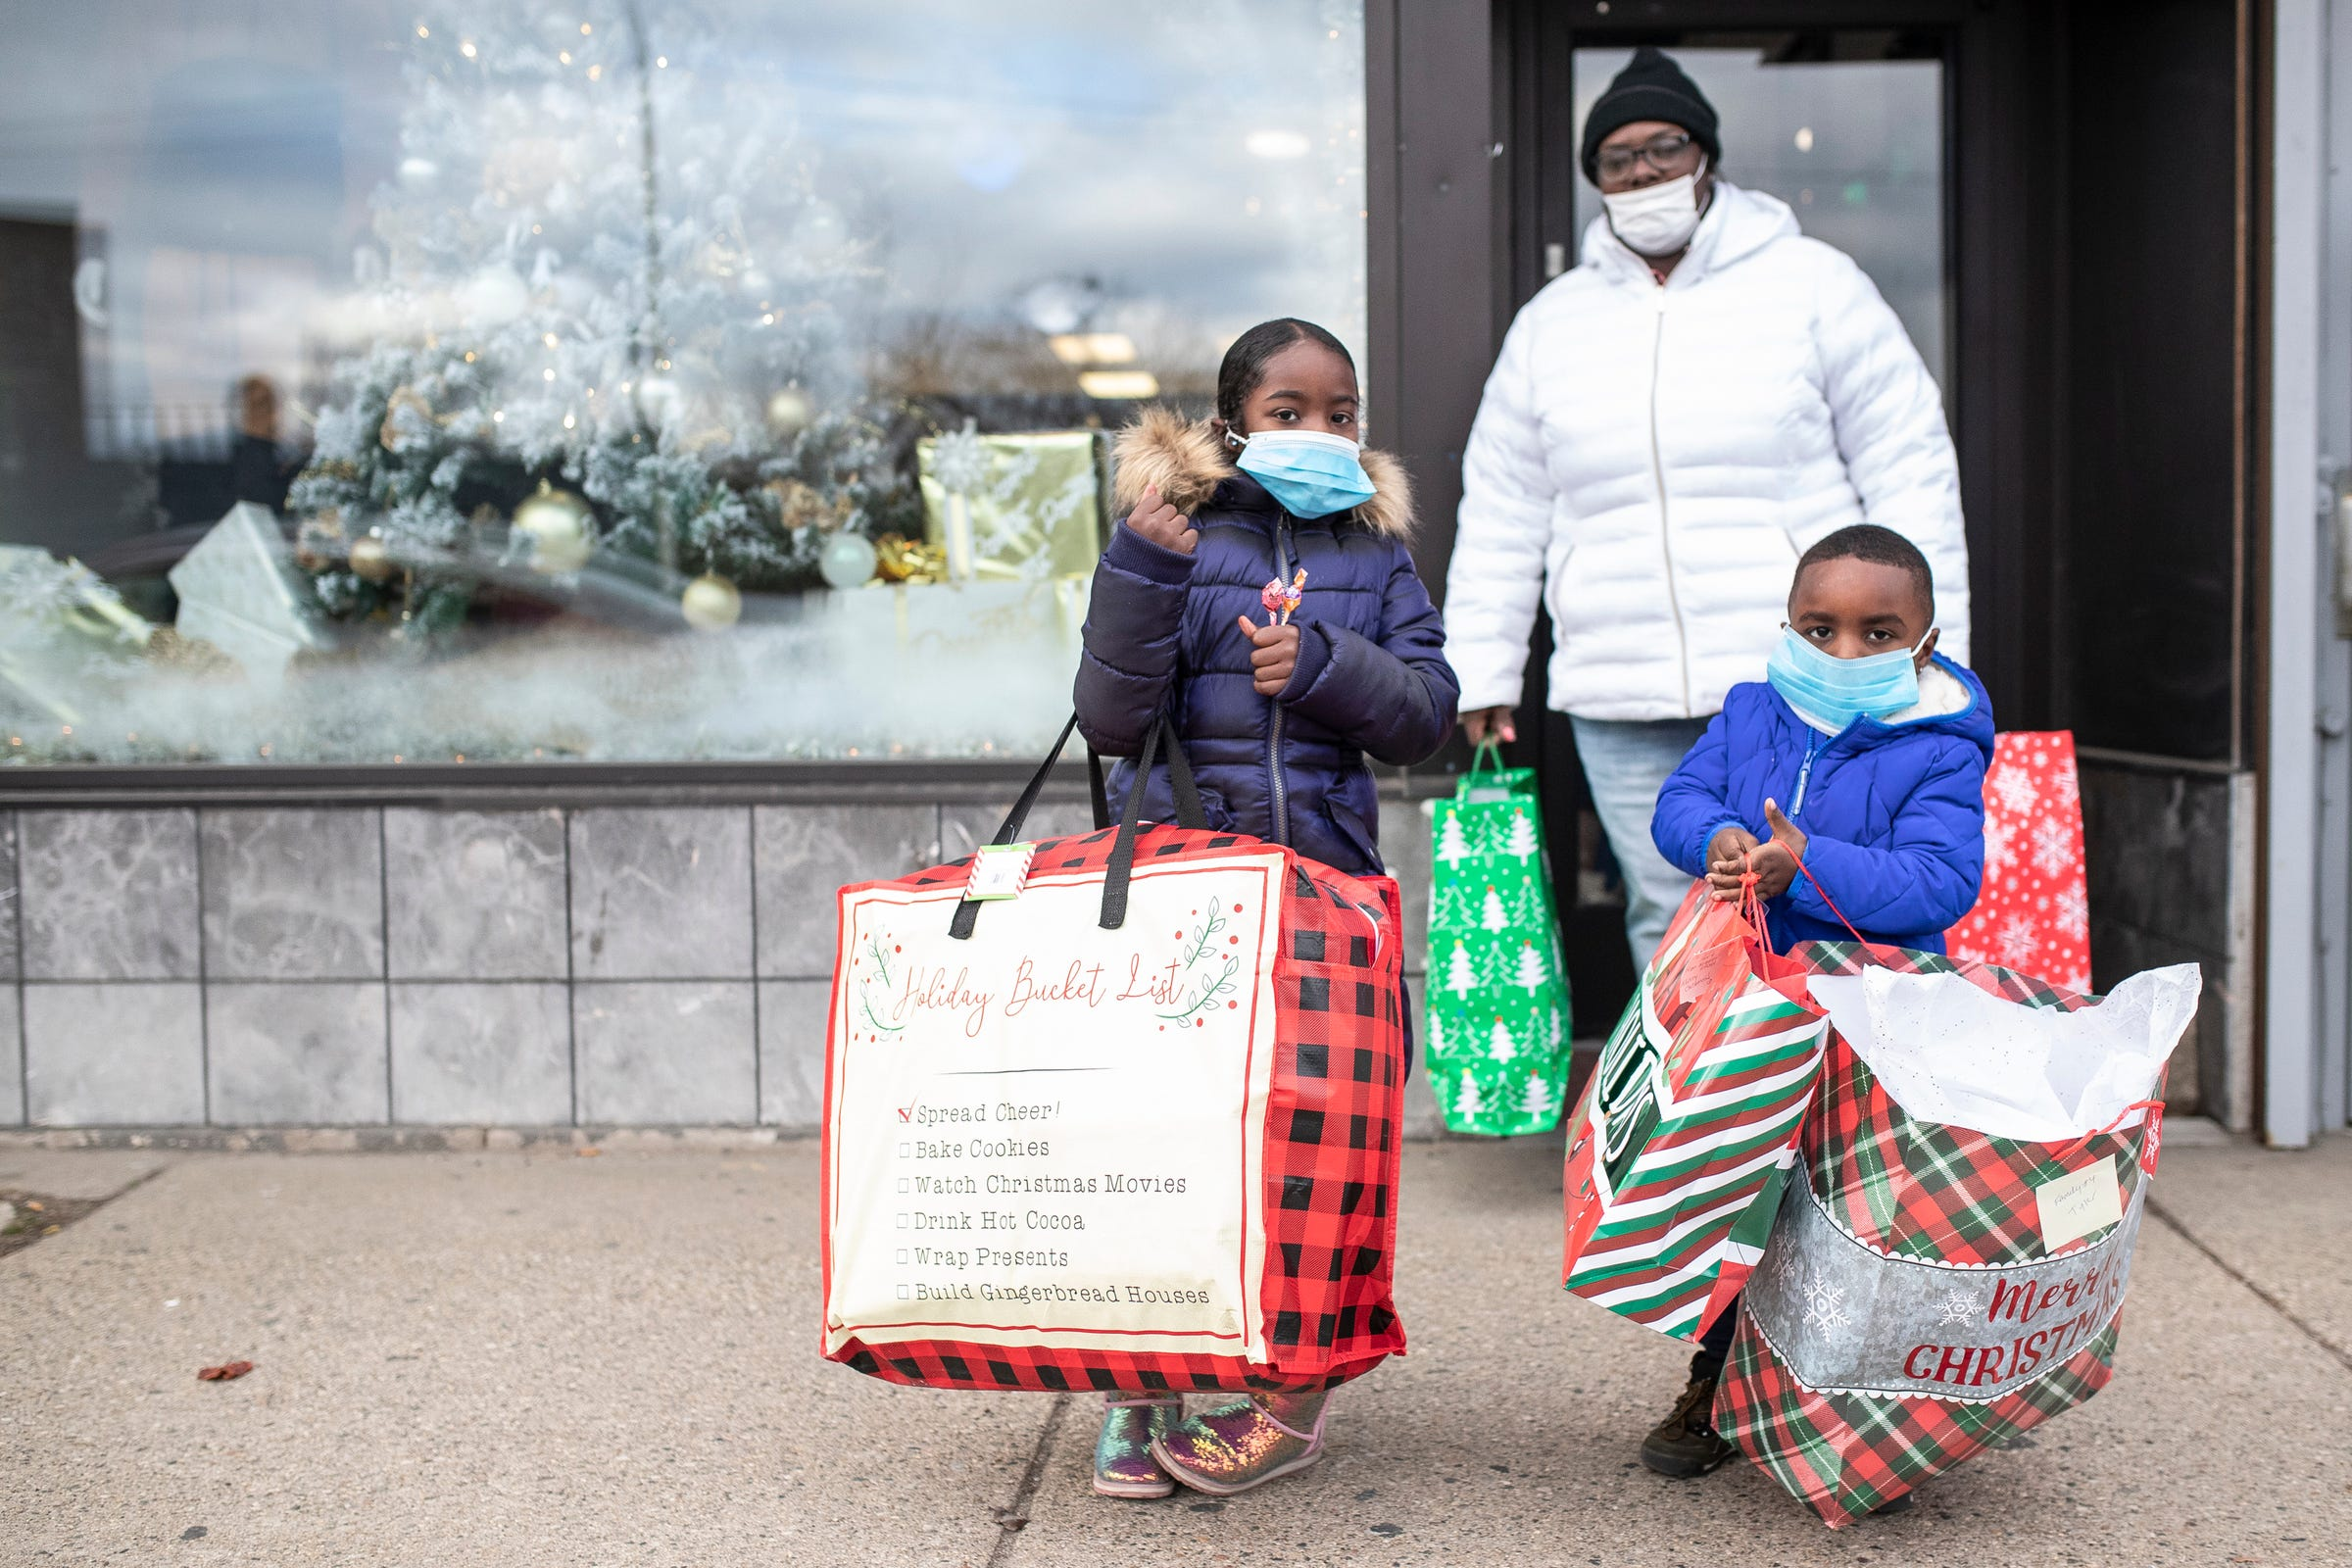 Savannah Cowart, 6, her brother Tyler Cowart, 4, and mother Monika Chester, all of Ecorse, walk out of Dream Rich Art Museum in Detroit after receiving gifts on Tuesday, Dec. 22, 2020.